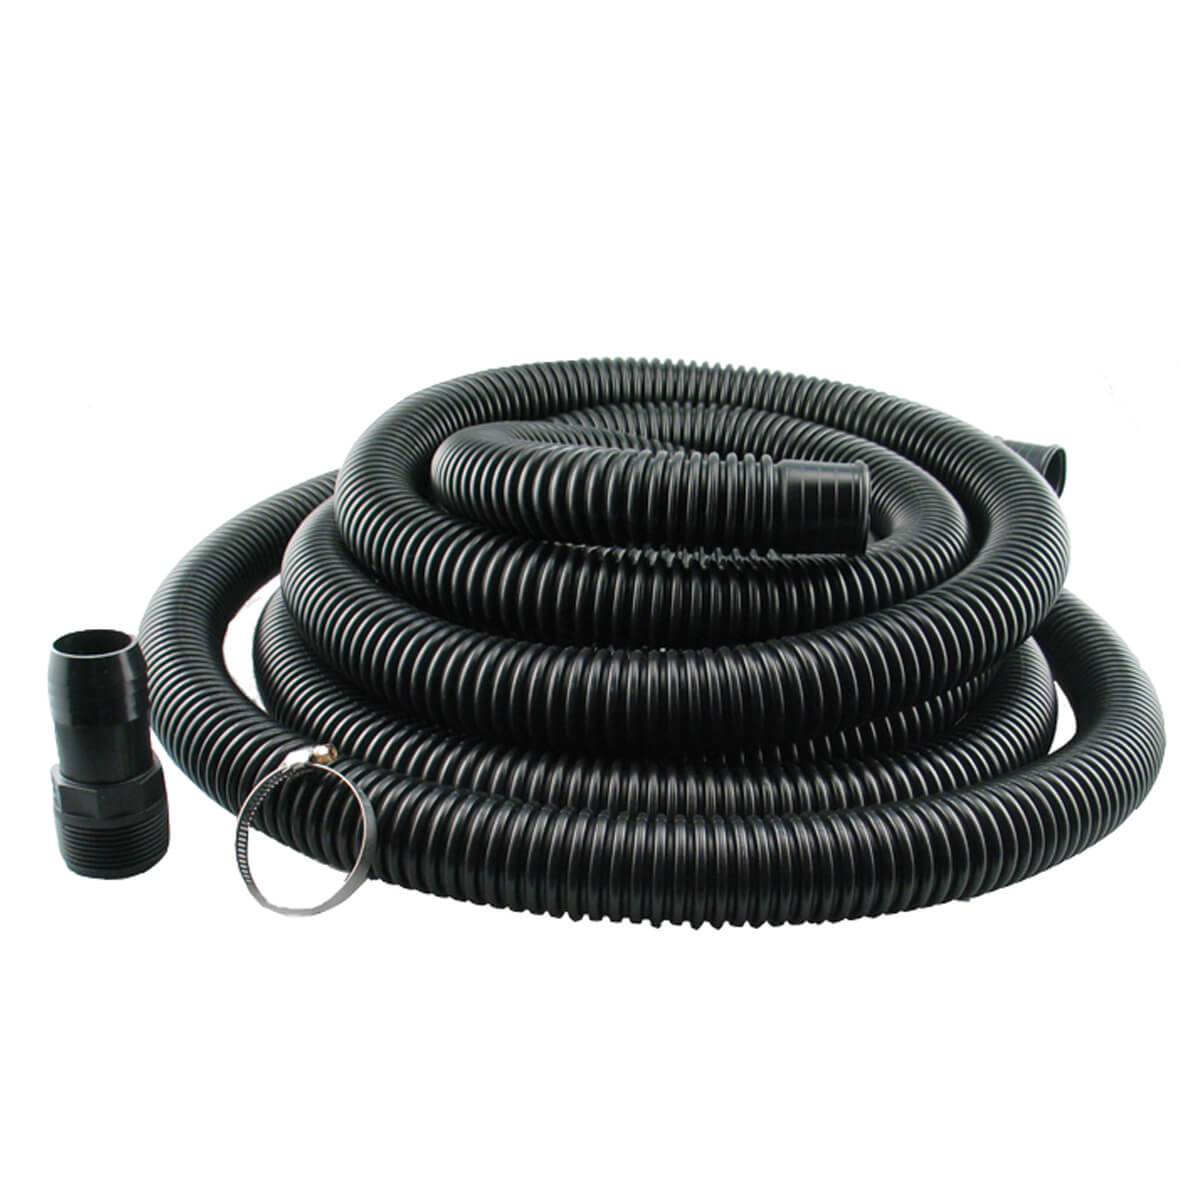 Sump Pump Discharge Kit - 1-1/4-in x 24-ft